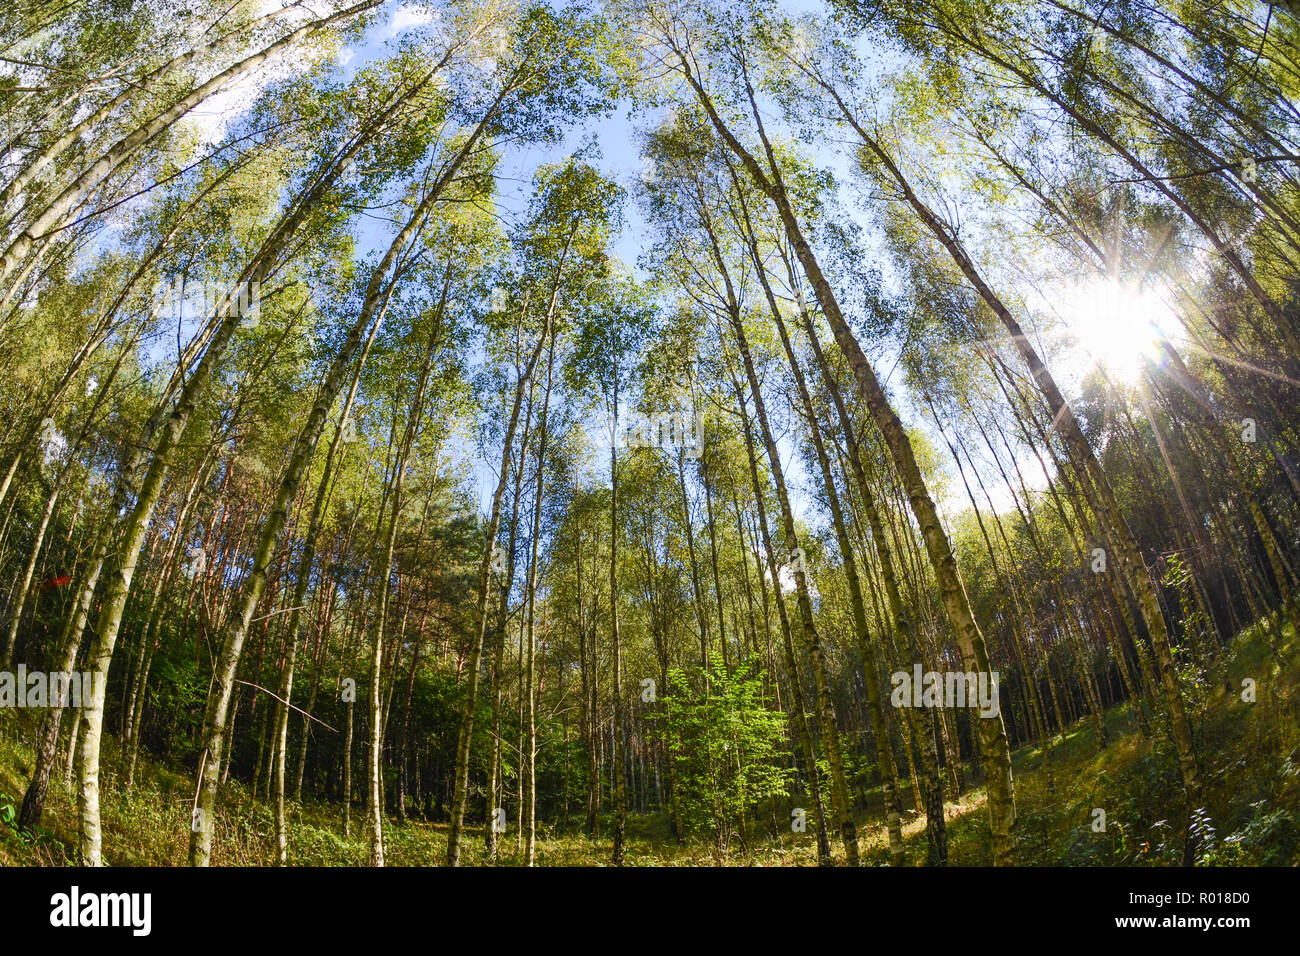 Early autumn young forest with golden leaves in golden light of early afternoon. - Stock Image